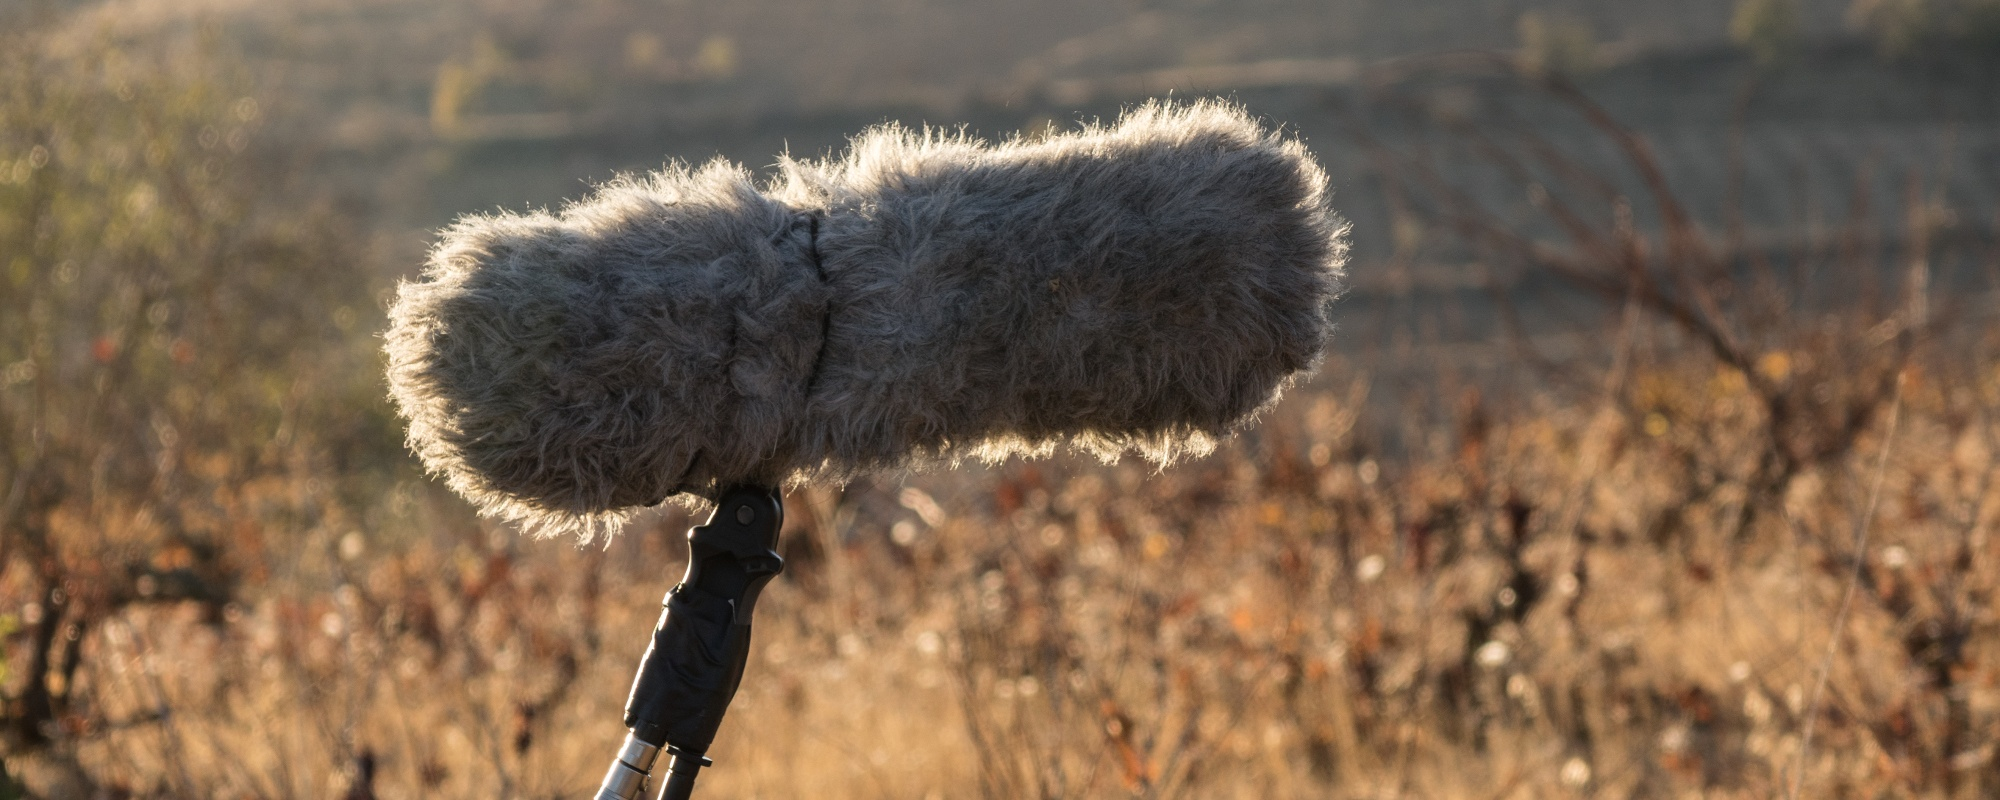 Closeup of boom microphone equipment used by location sound recordists for exterior film production